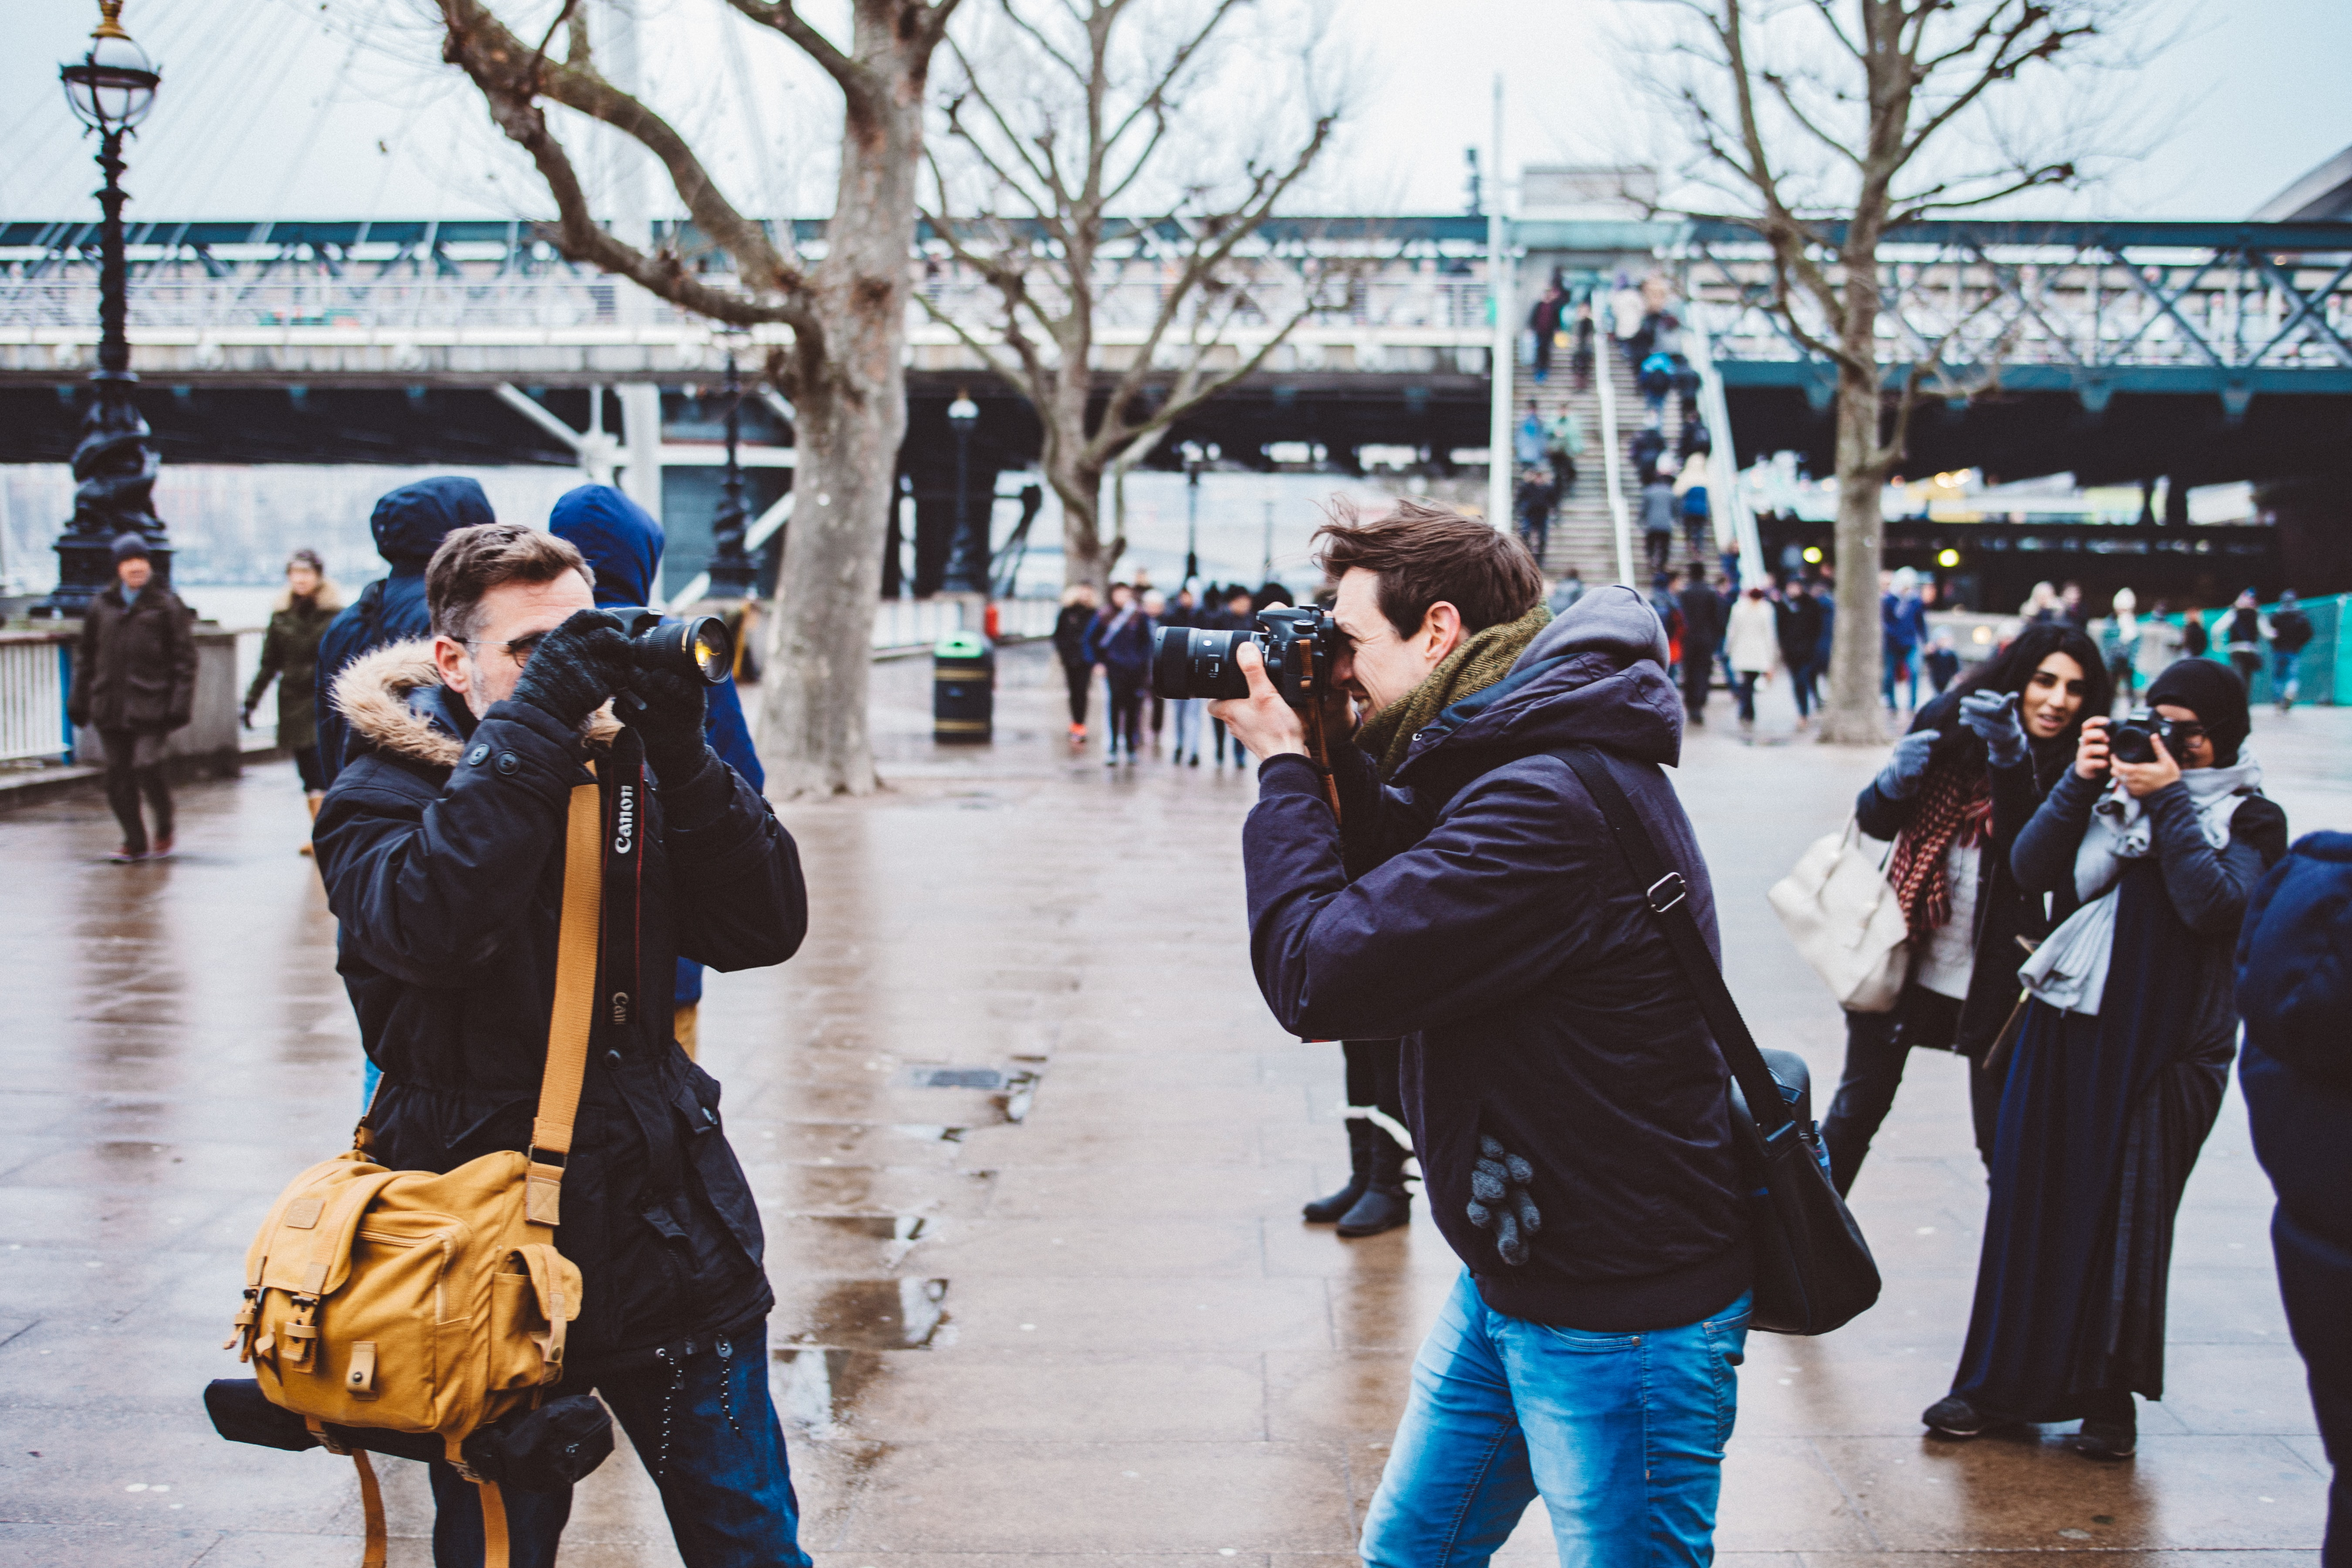 Three photographers taking pictures of each other on a street in South Bank